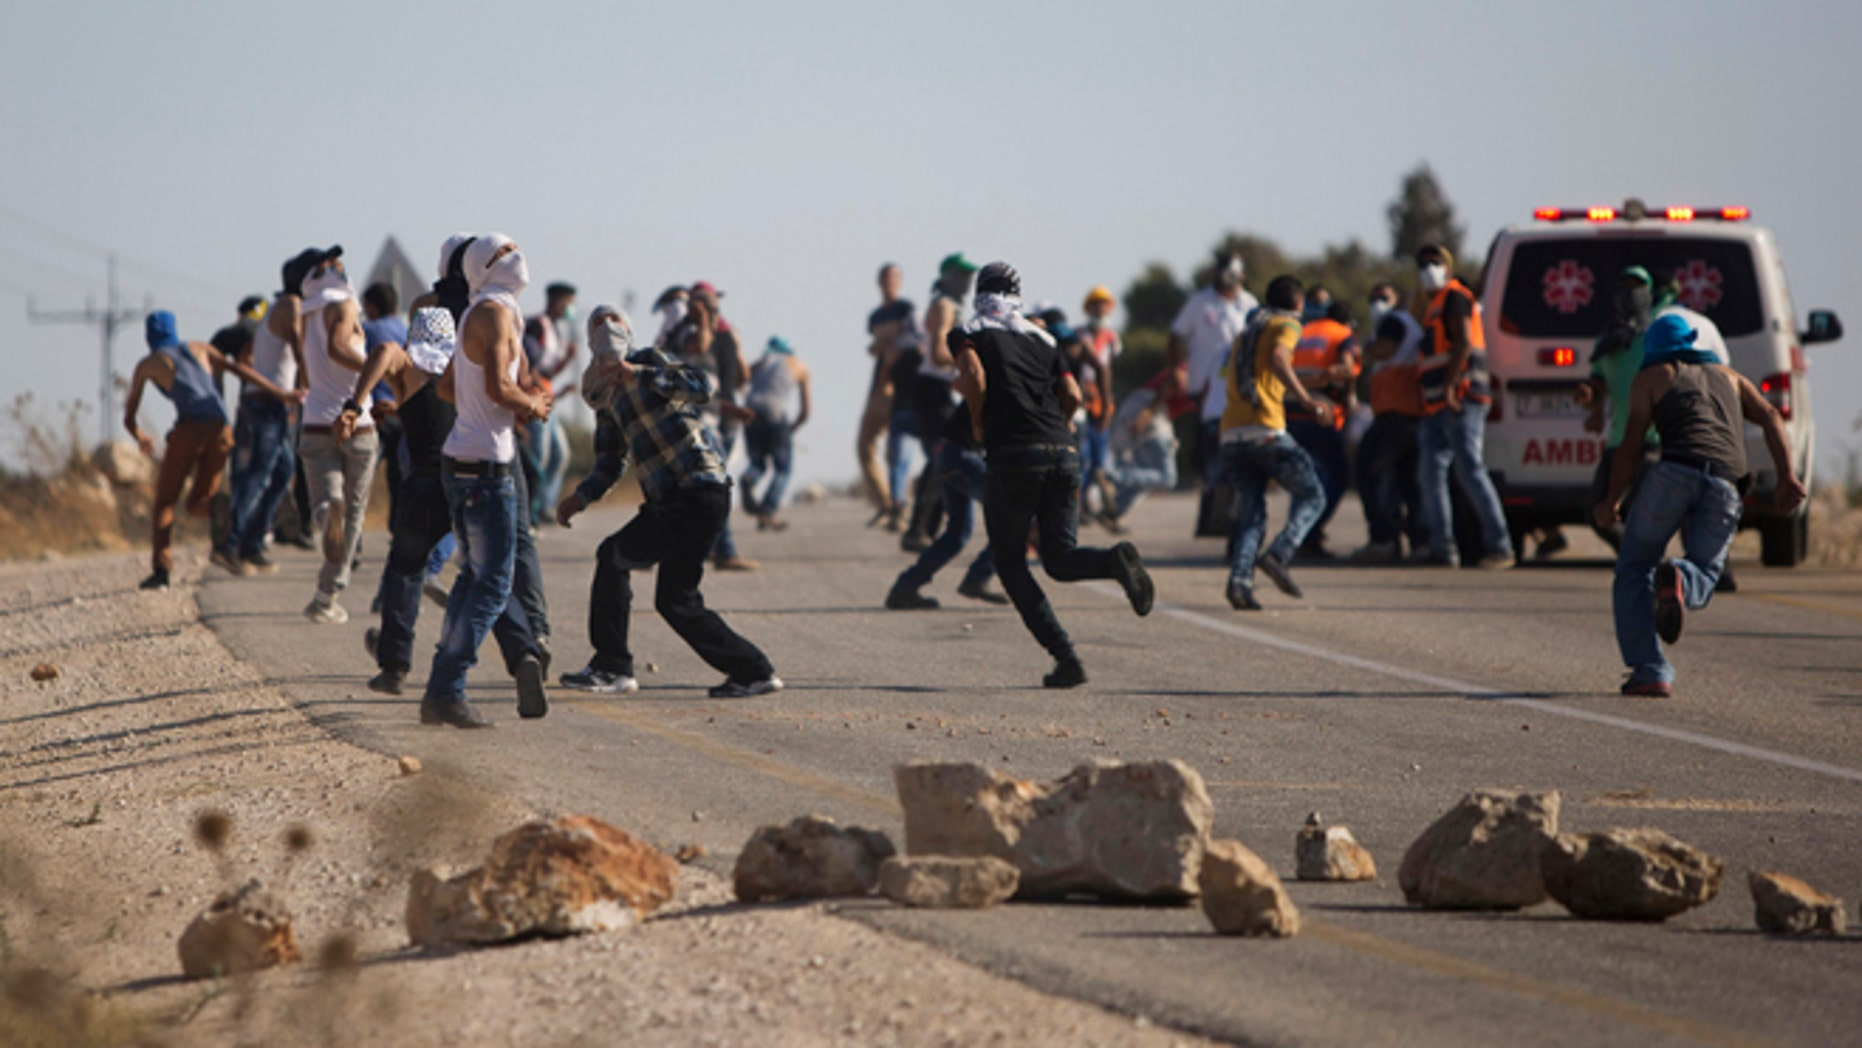 Aug. 8, 2015: Palestinians run for cover from tear gas fired by Israeli security forces during clashes that occurred after the funeral of Palestinian Saed Dawabsheh, 32, in the West Bank village of Duma near Nablus.